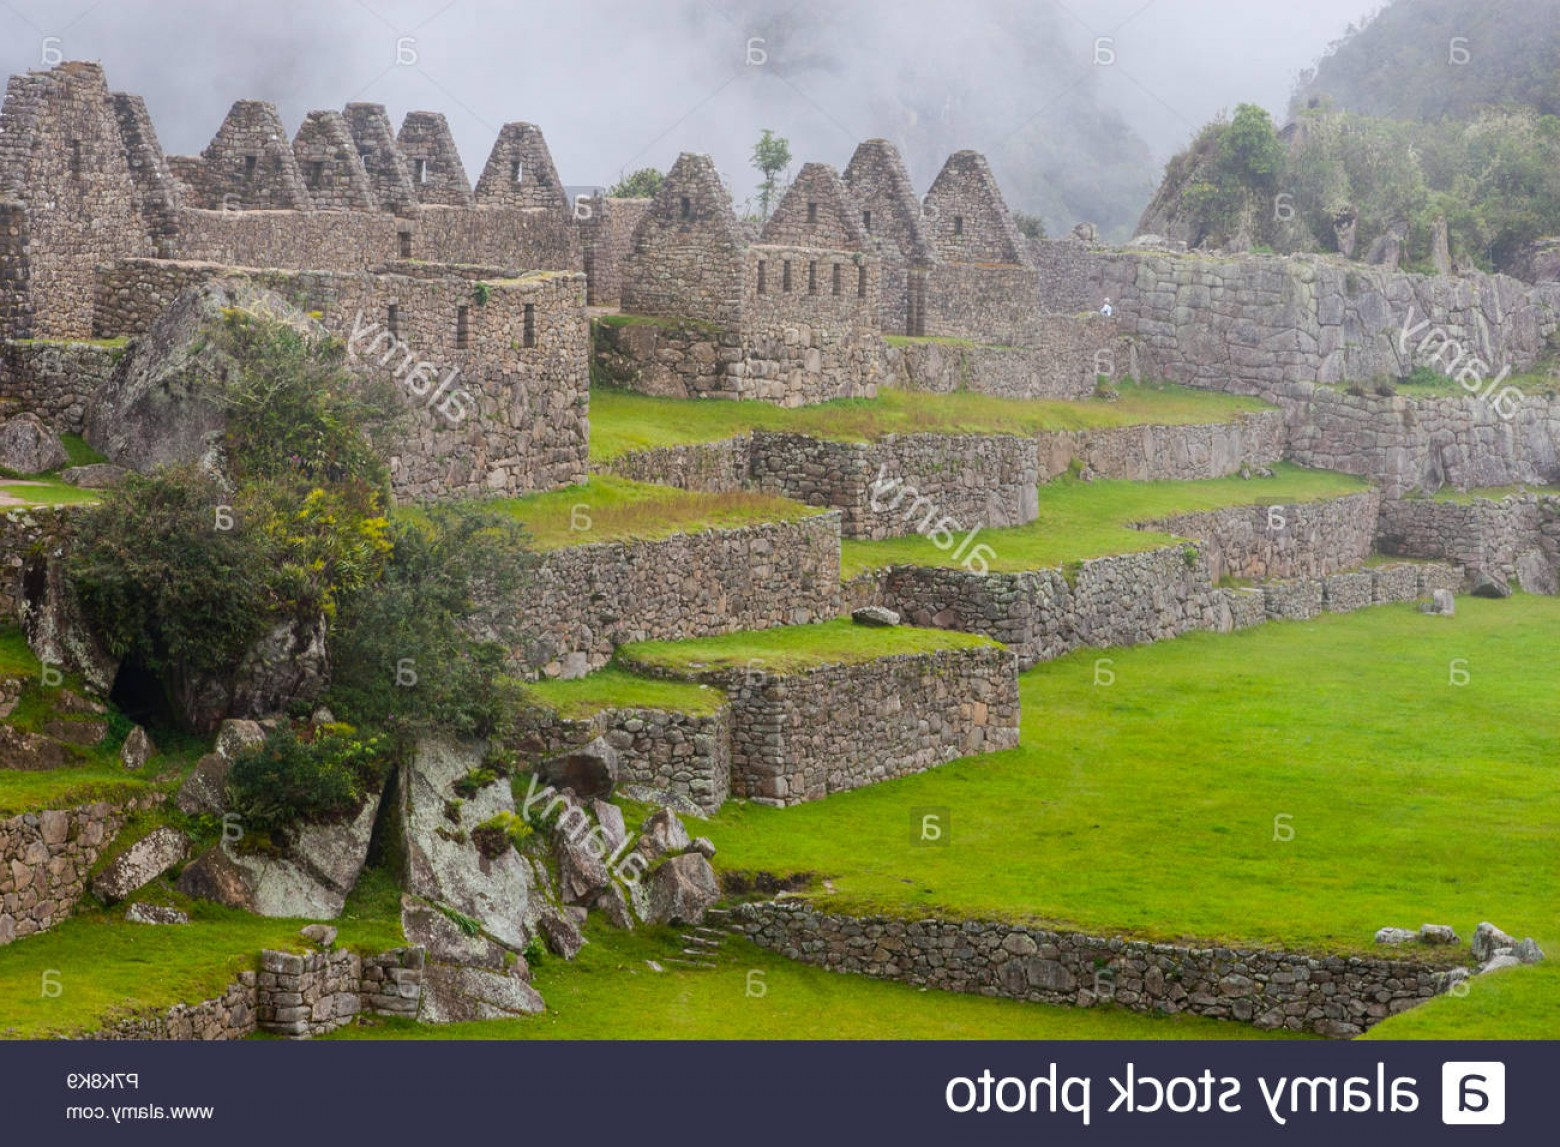 Vector South America Ancient Ruins: Ruins Of Machu Picchu Ancient Inca Lost City In The Andes Nature With Fog Peru South America No People Image